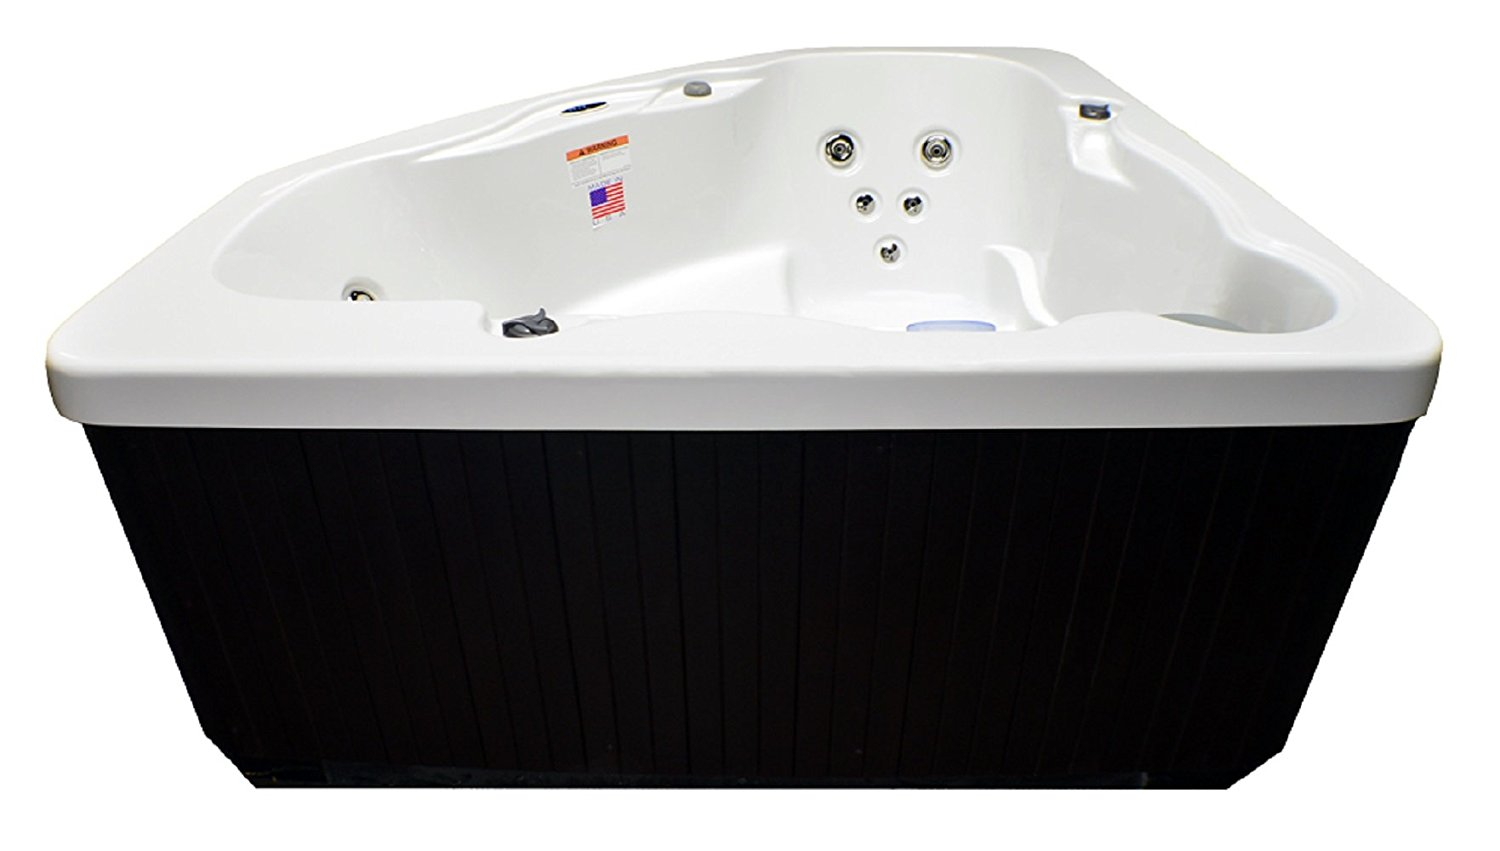 Attirant Home And Garden Spas LPI14XC 3 Person 14 Jet Corner Spa  Plug And Play With  GFCI Cord Included, Ivory White